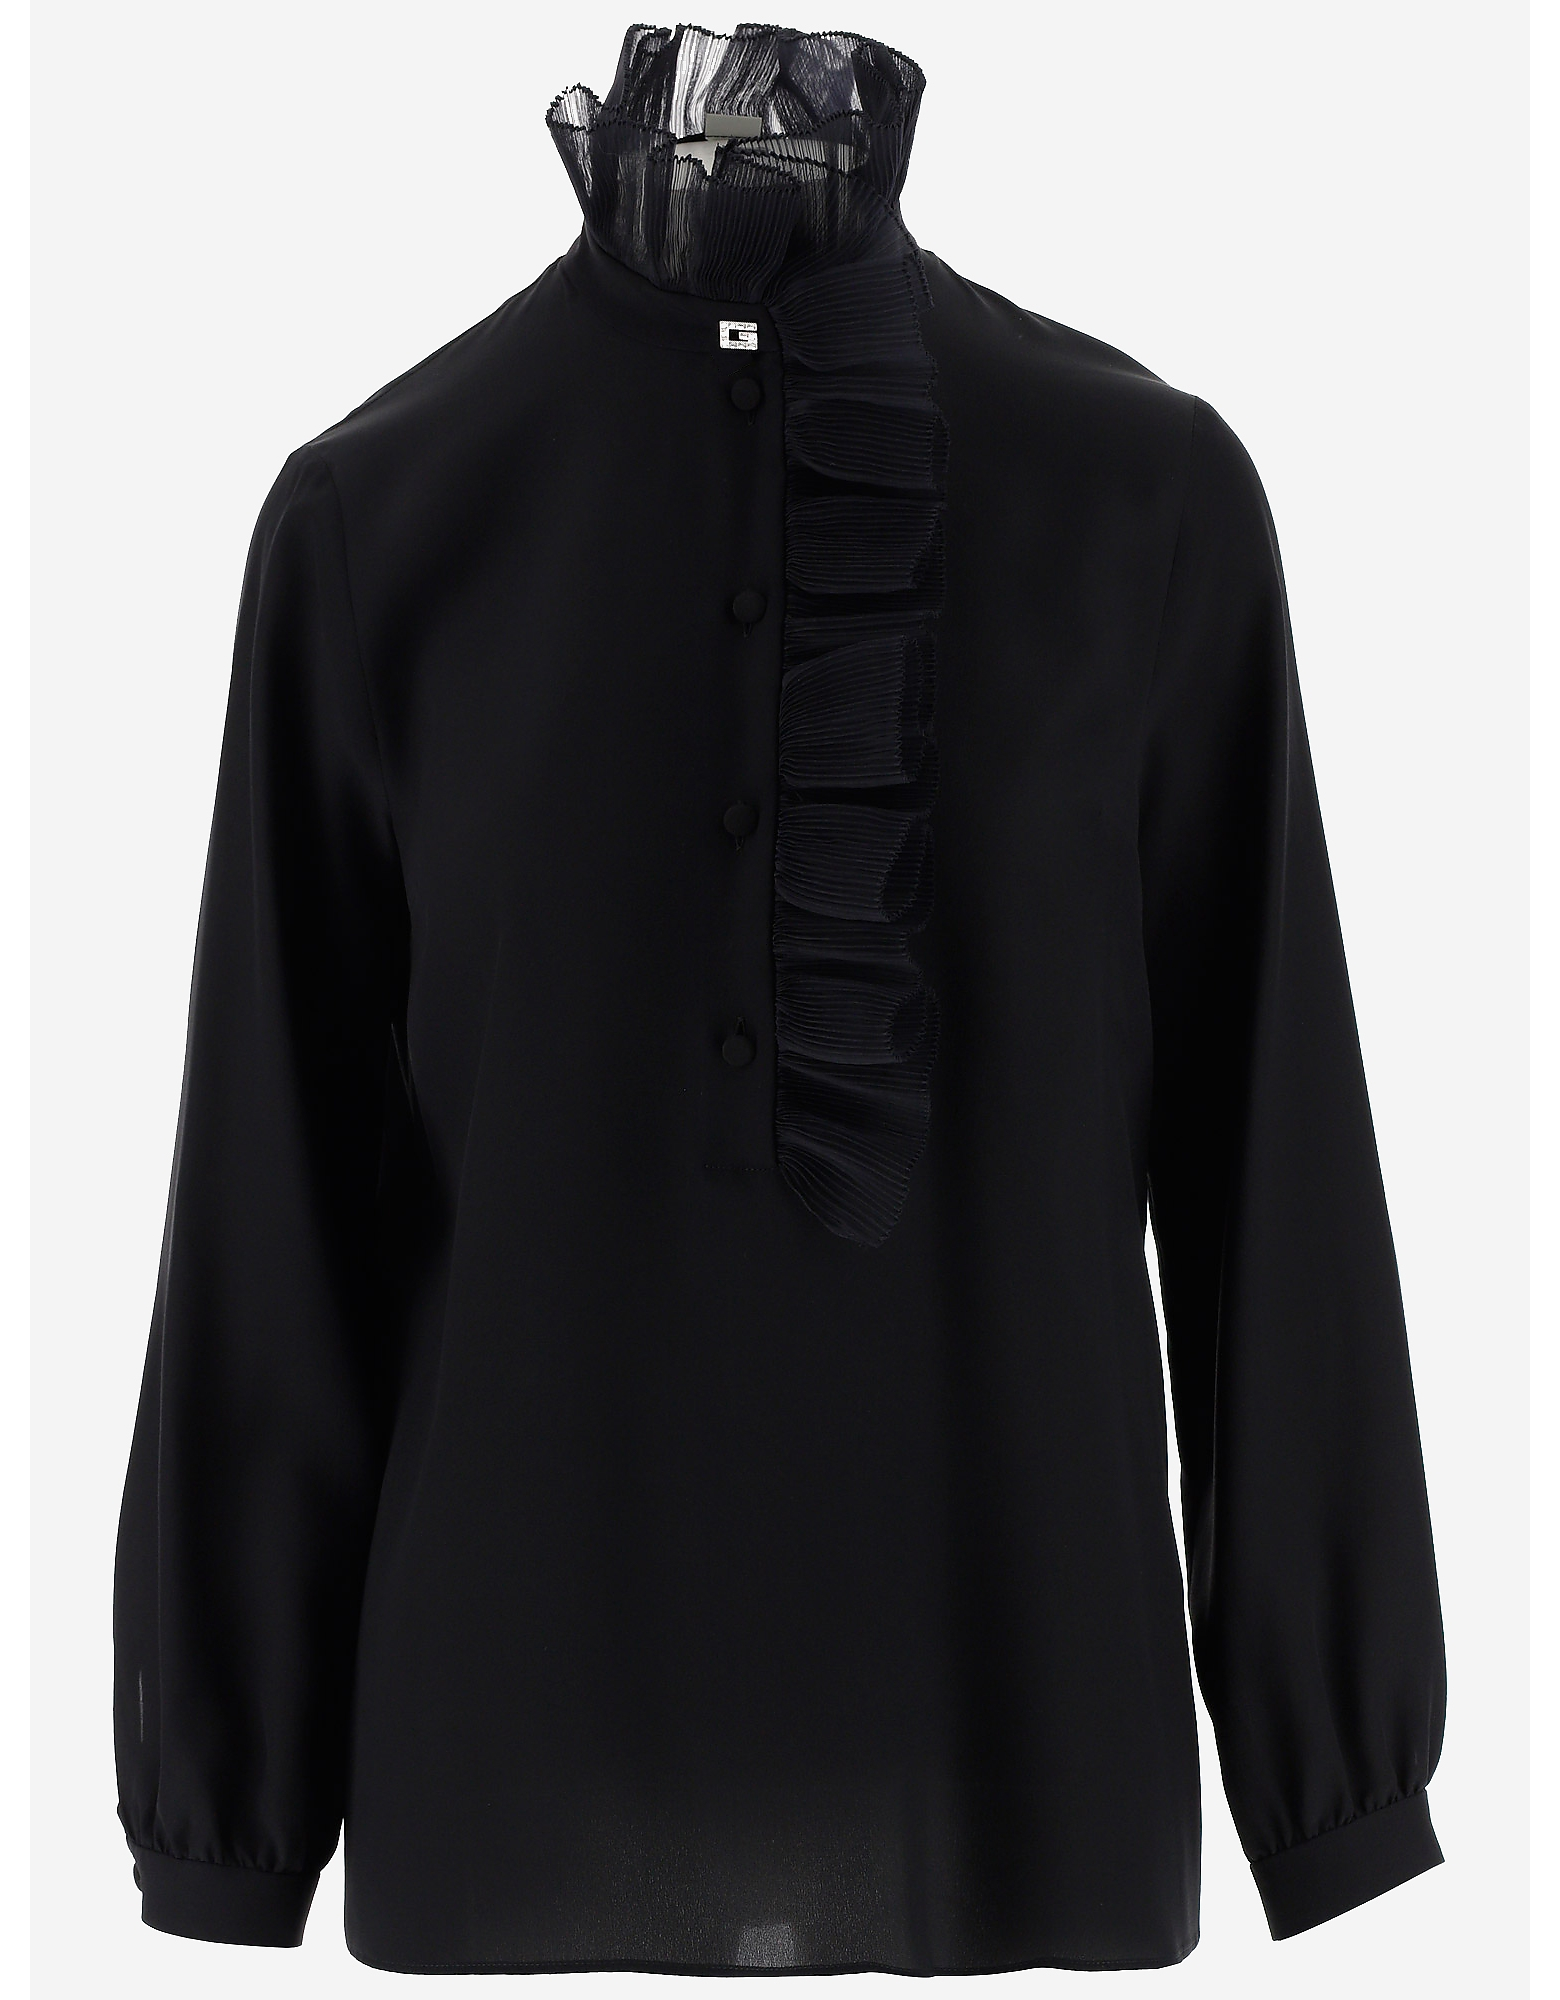 Gucci Designer Shirts, Black Silk Women's Ruffles Shirt